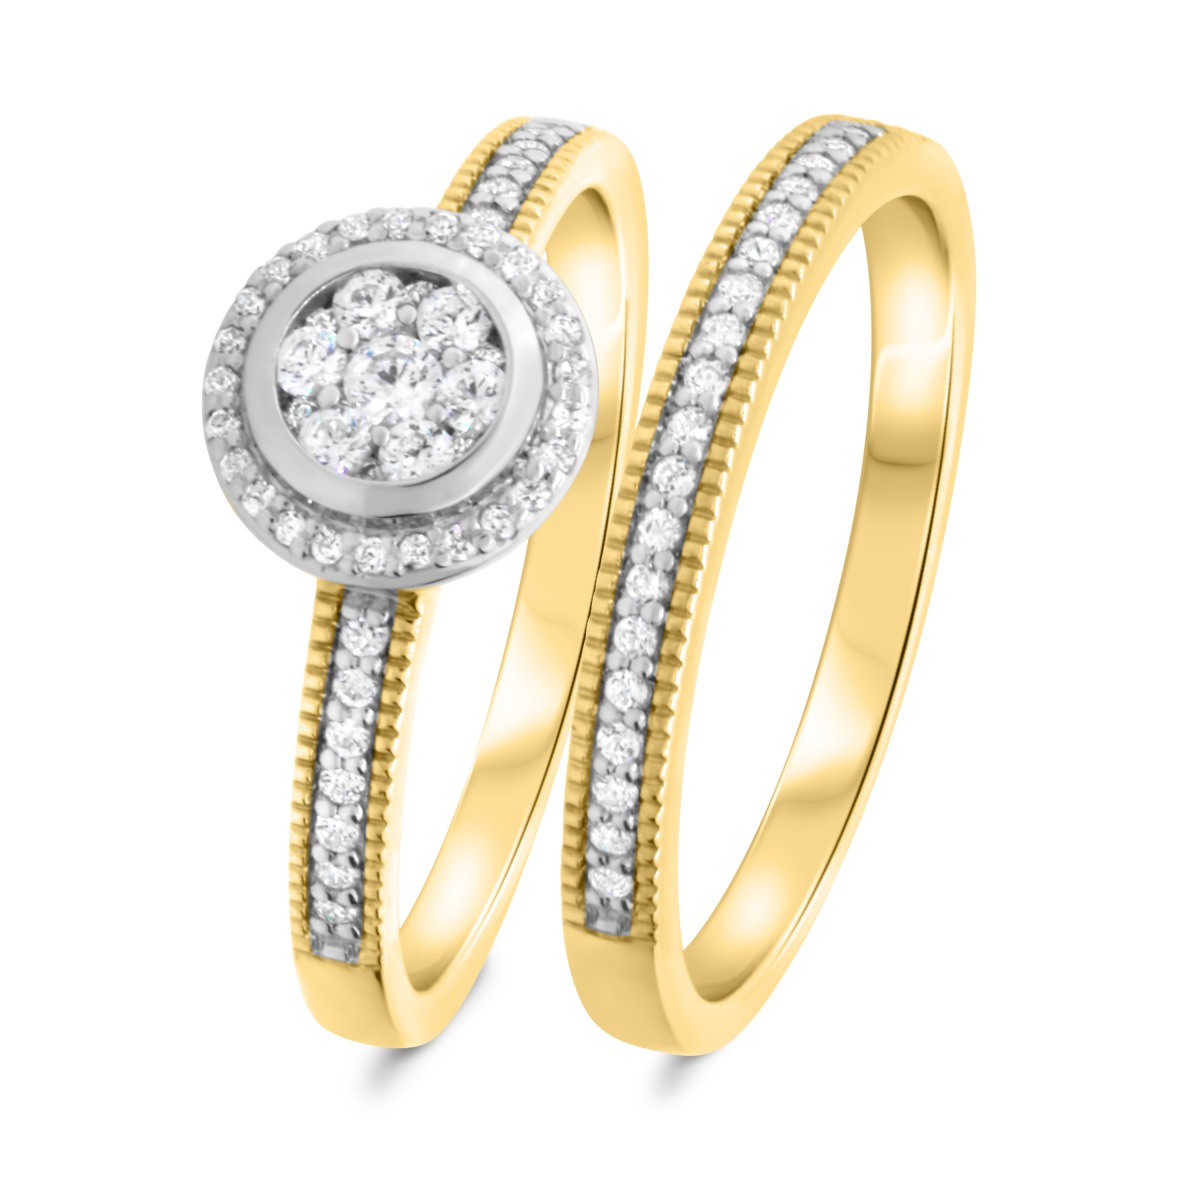 1/2 CT. T.W. Diamond Matching Bridal Ring Set 10K Yellow Gold